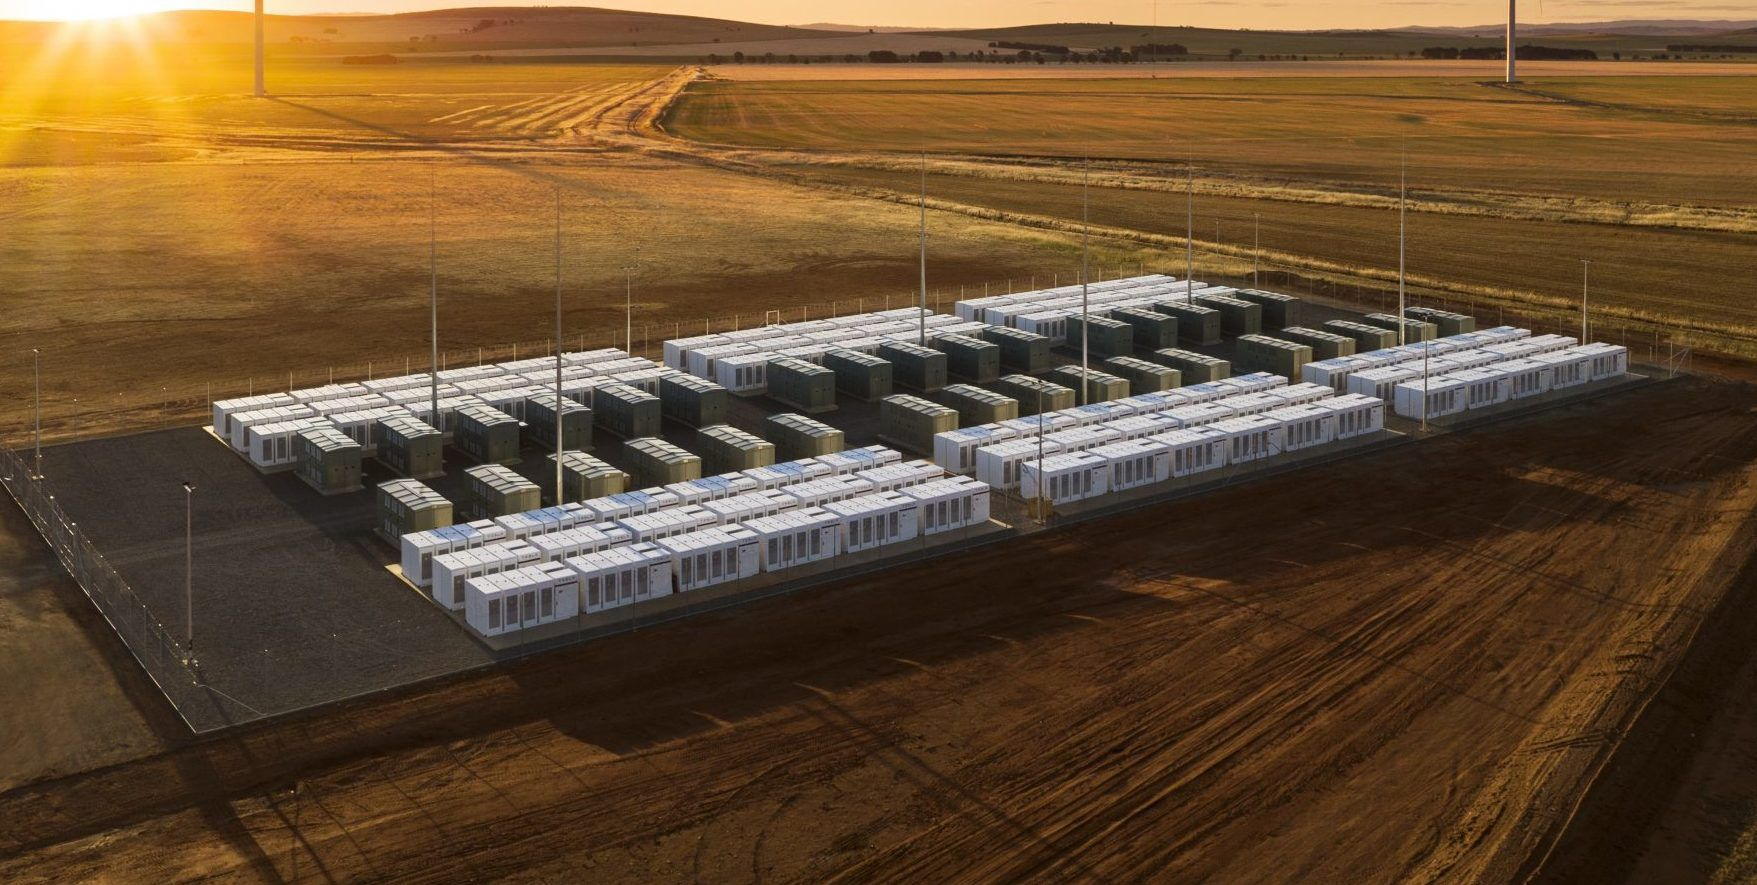 Tesla S Jb Straubel Discusses Batteries And Scalability As New Energy Storage Project Is Announced Tesla Big Battery Battery Farming